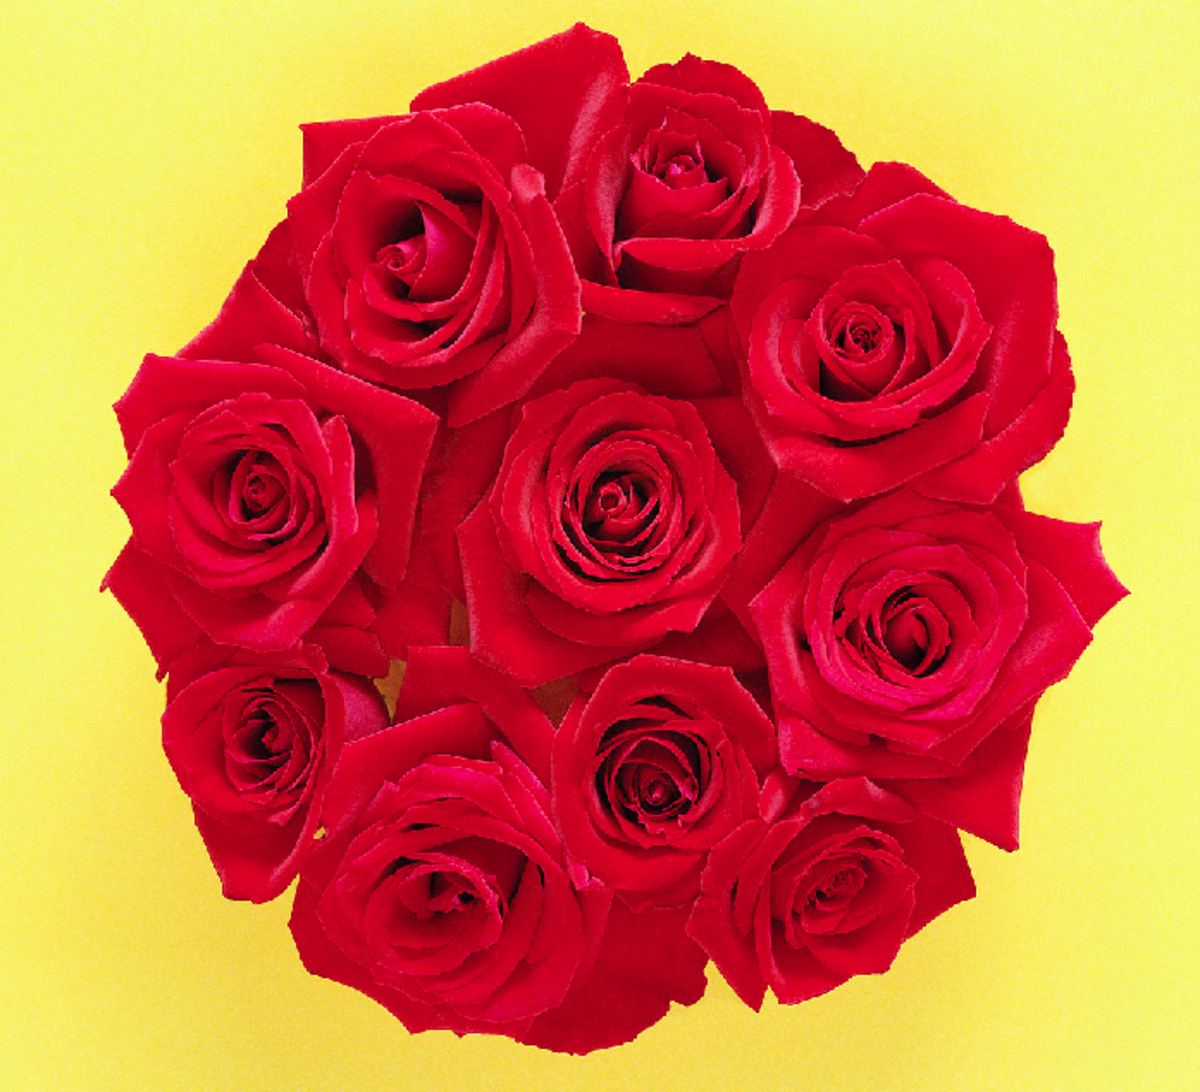 A Circle of Red Roses Bouquet Image